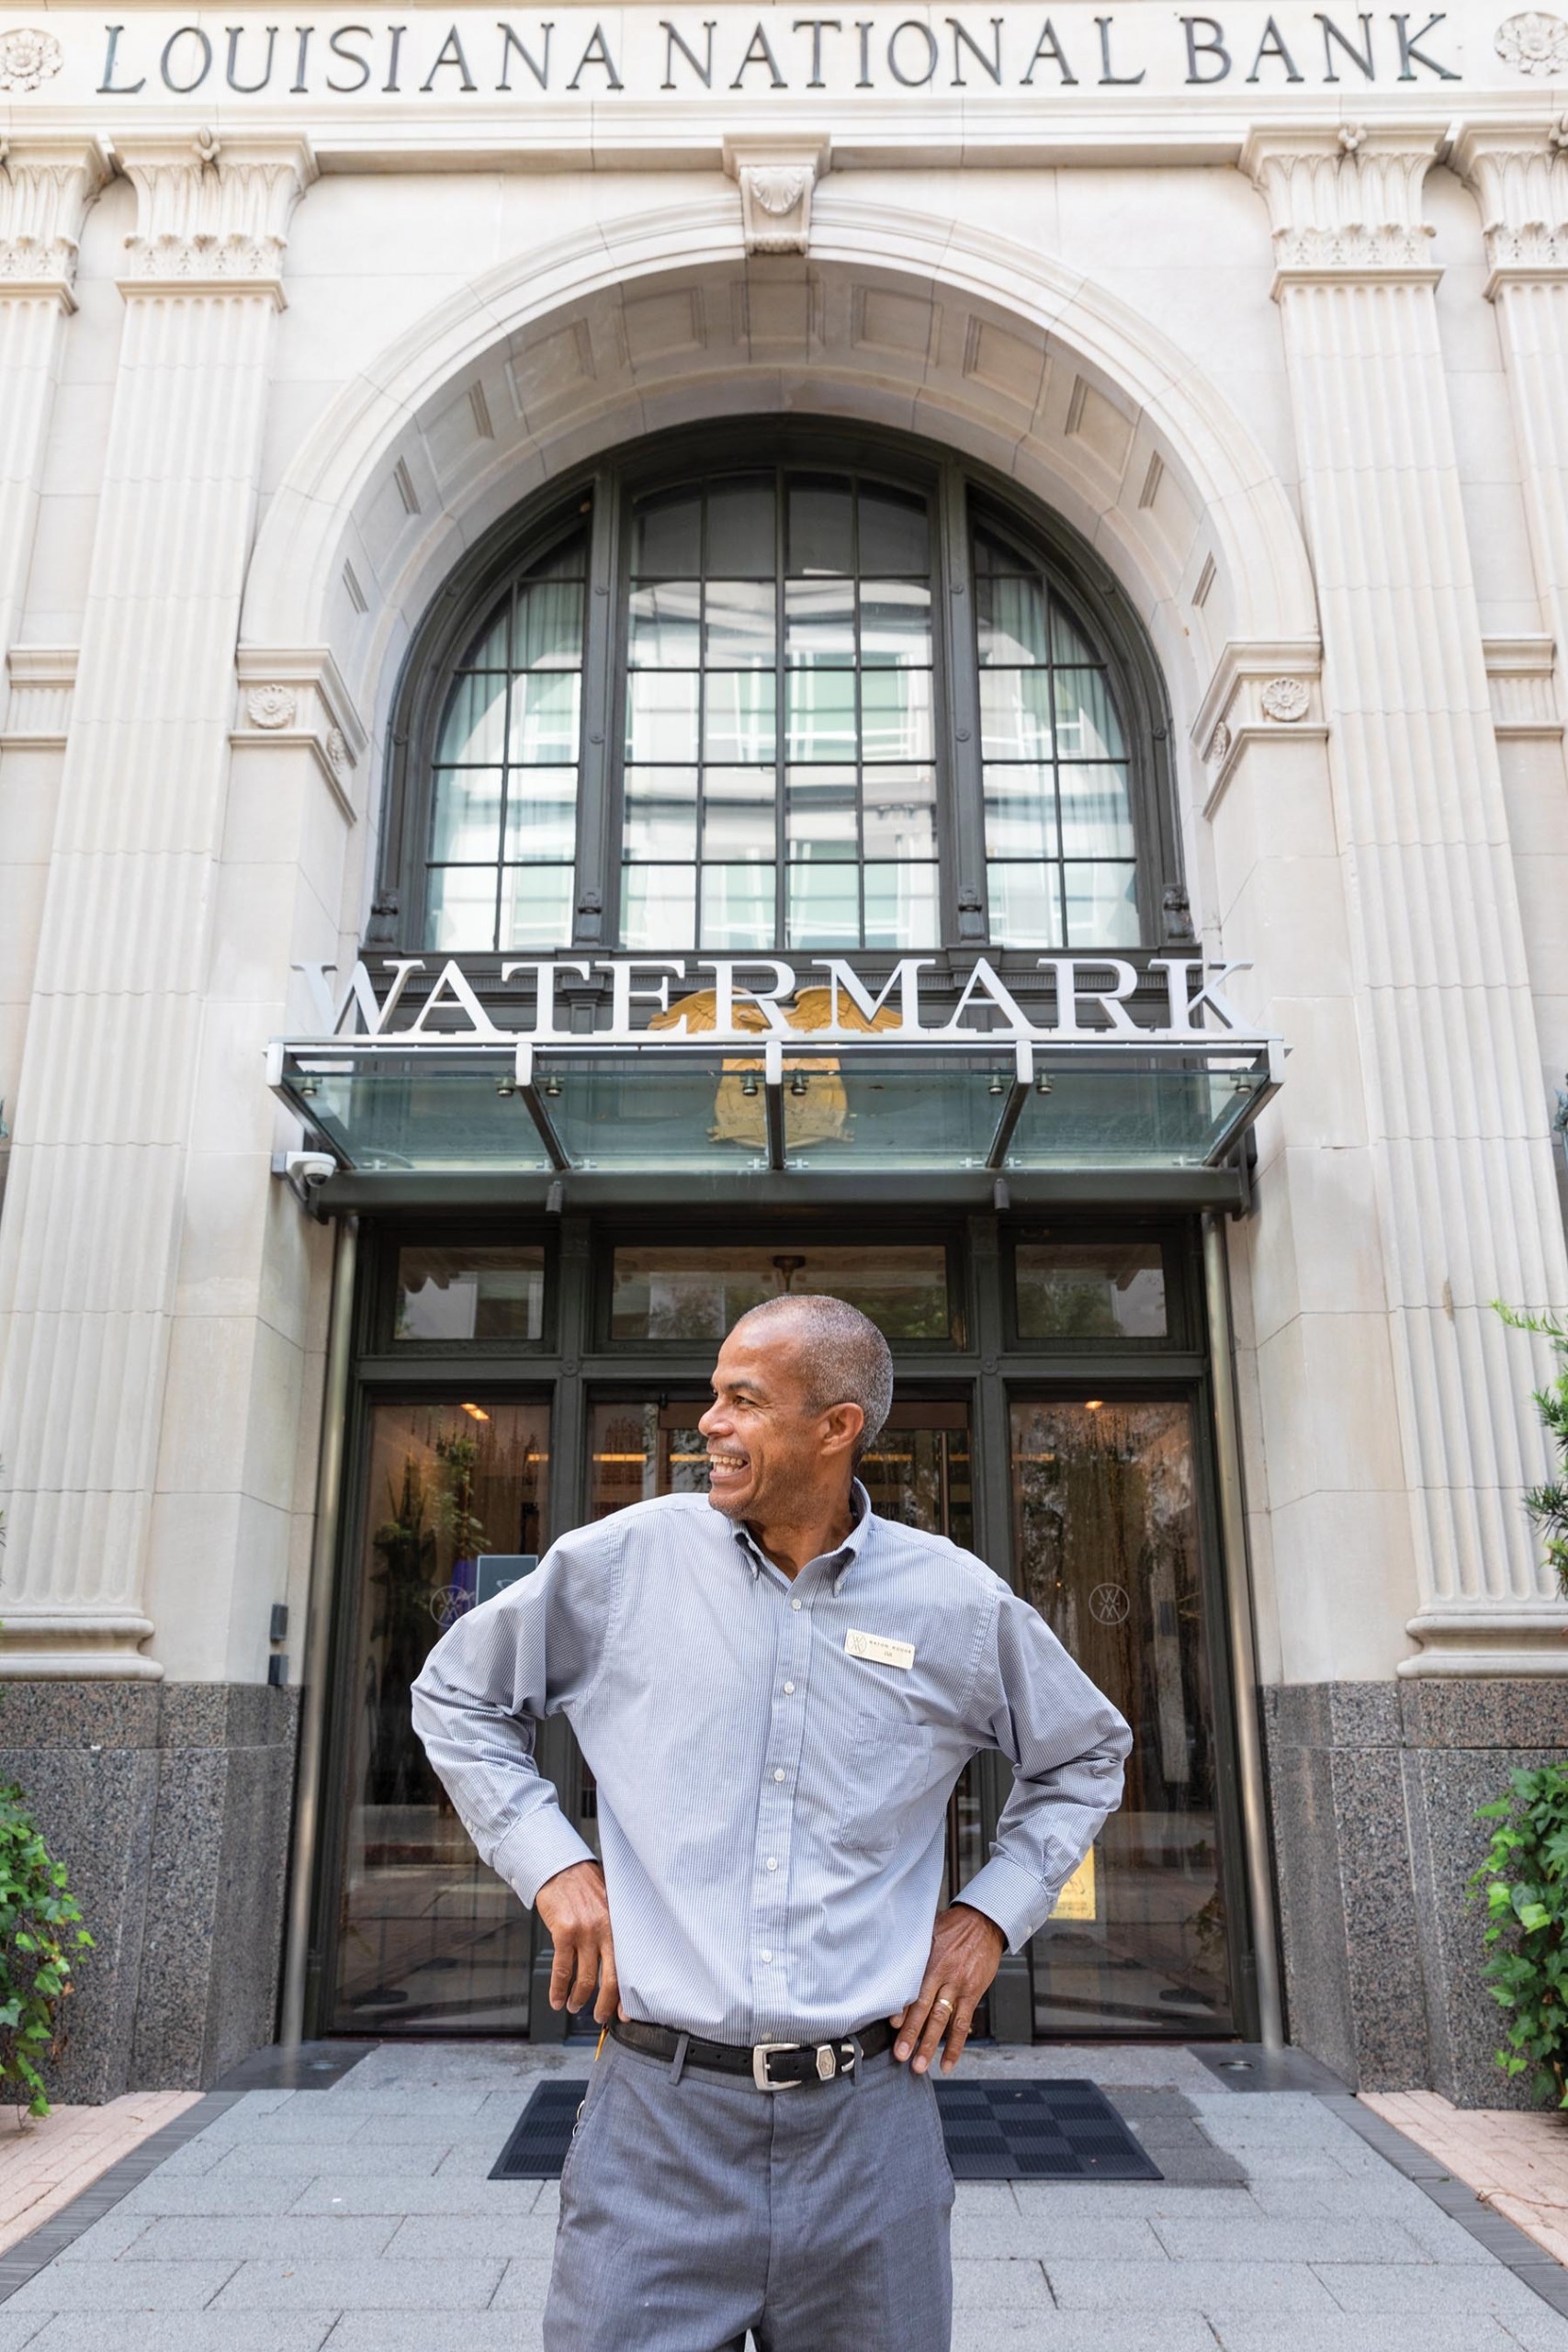 Bill Facey, Bell Captain Of The Watermark Hotel, Baton Rouge